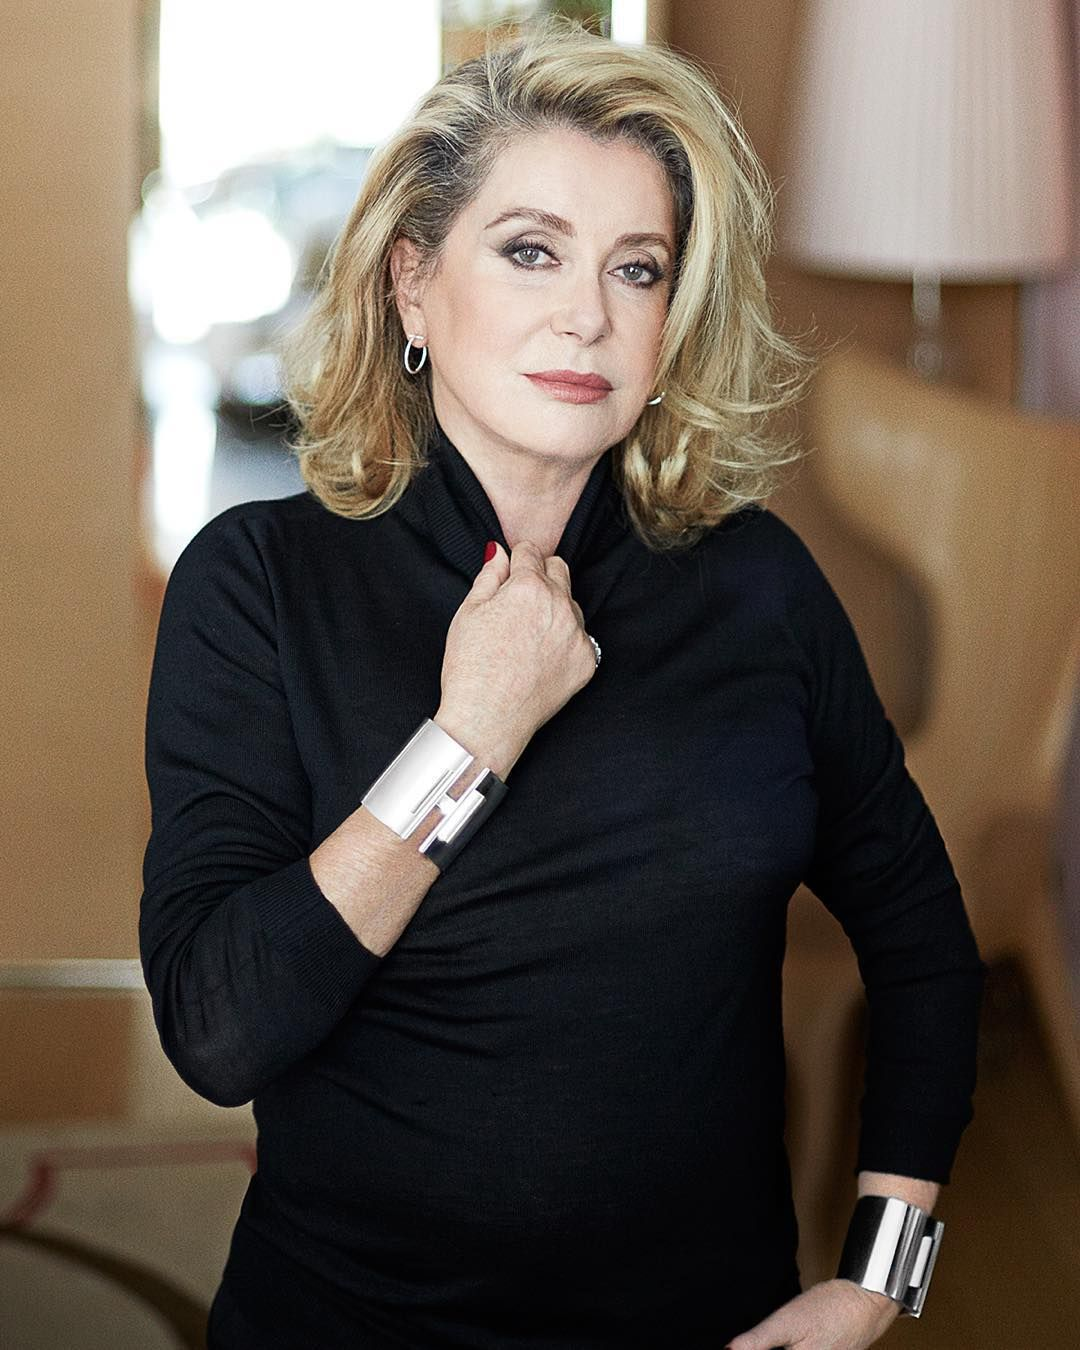 ba0bfc8c4ab7f The stunning Catherine Deneuve wears Tiffany T wire diamond hoop ...